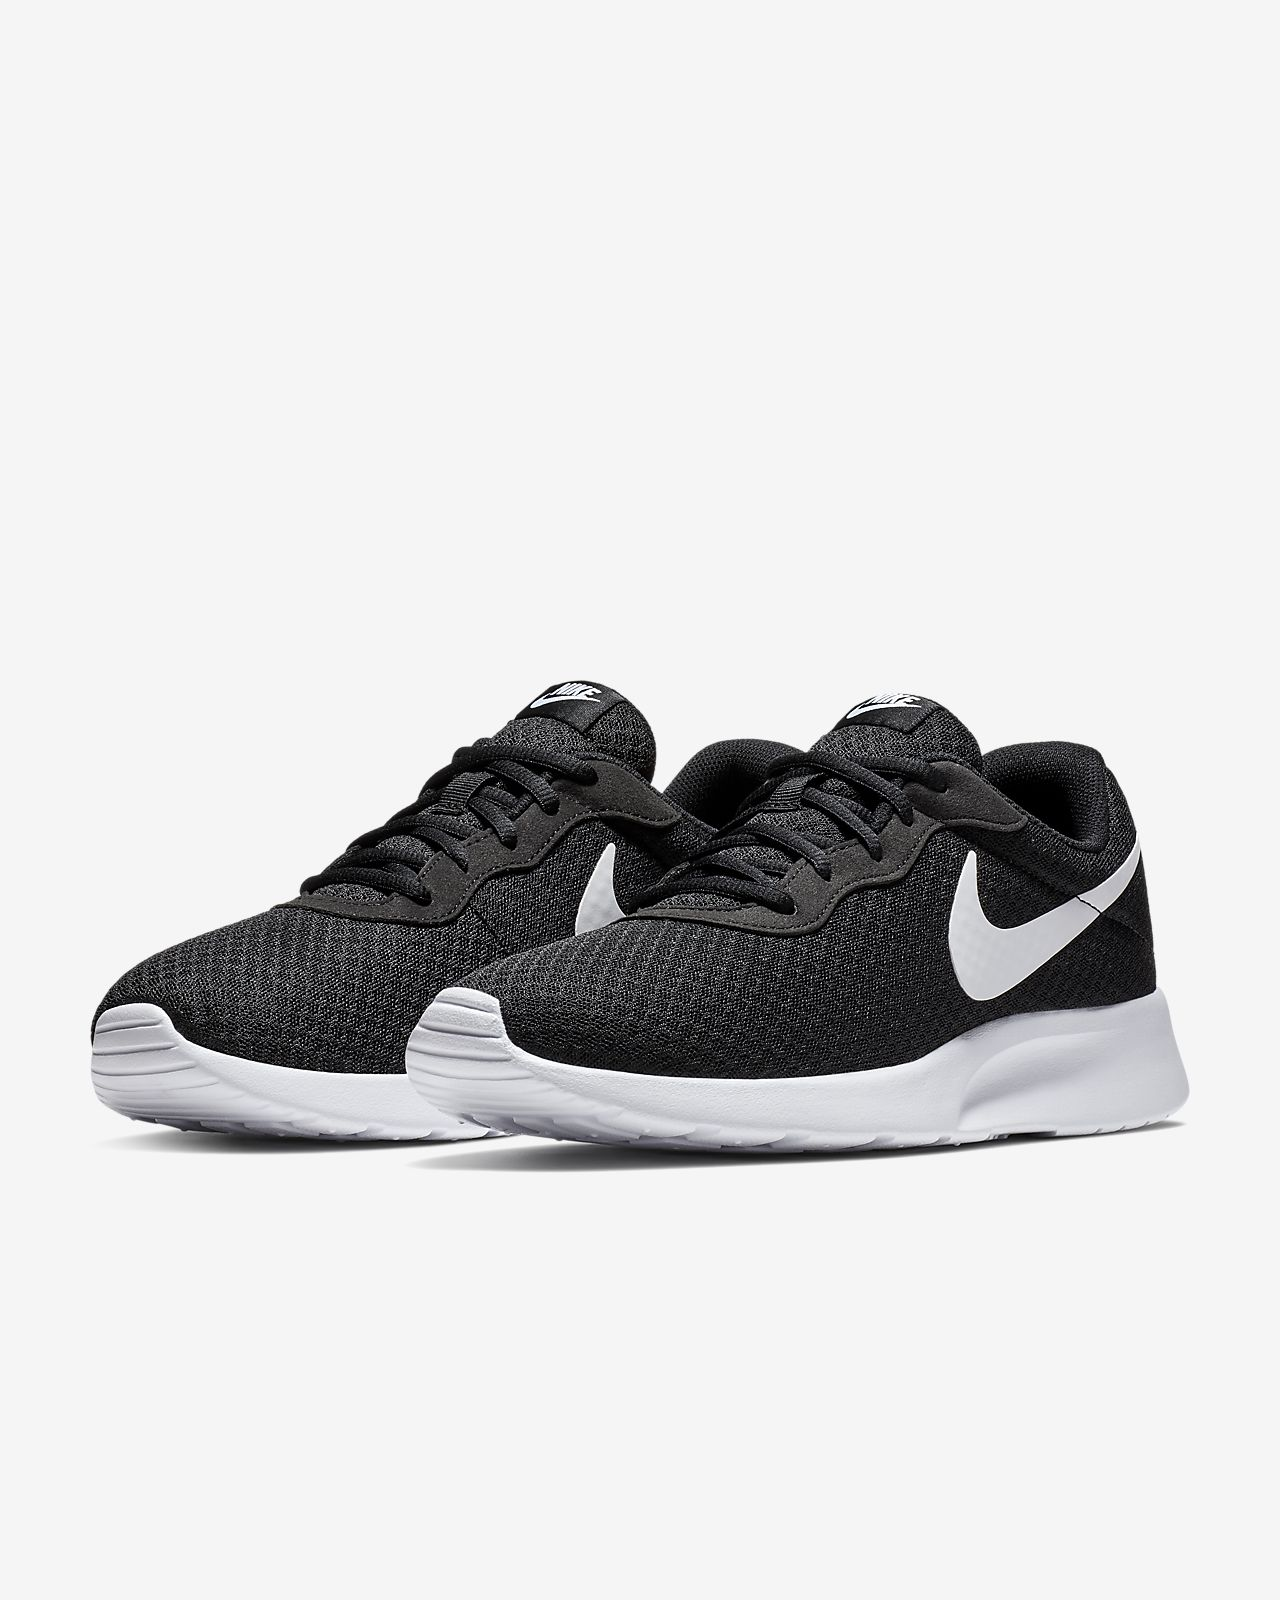 quality design 46ab8 060f4 ... Chaussure Nike Tanjun pour Homme